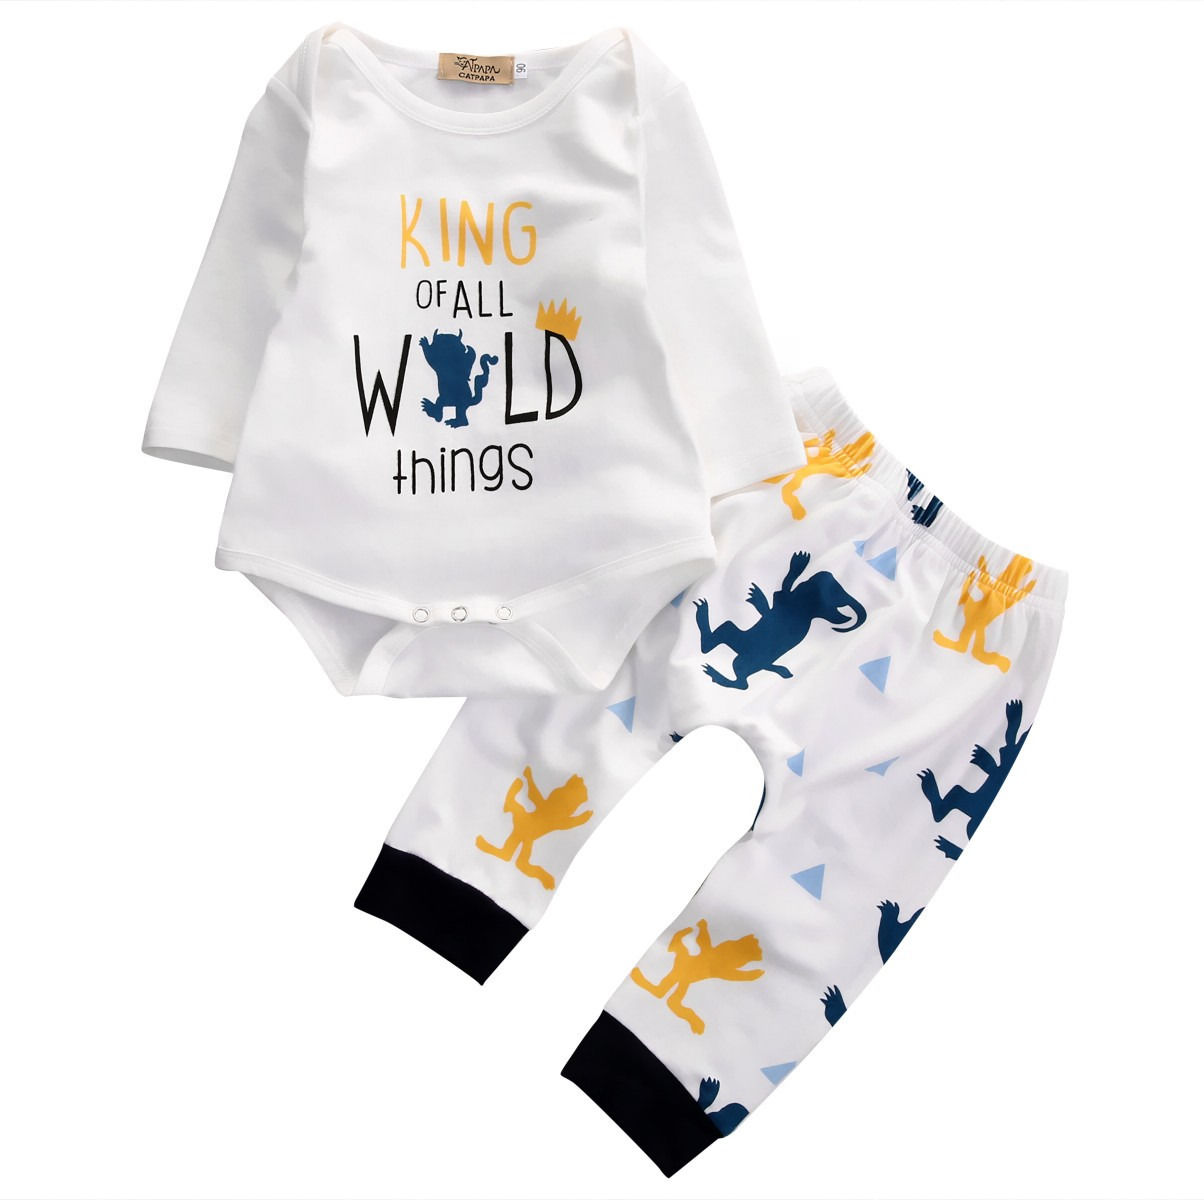 pudcoco NEW Newborn Baby Infant Boys Clothing Tops Romper Pants Leggings Outfits Set